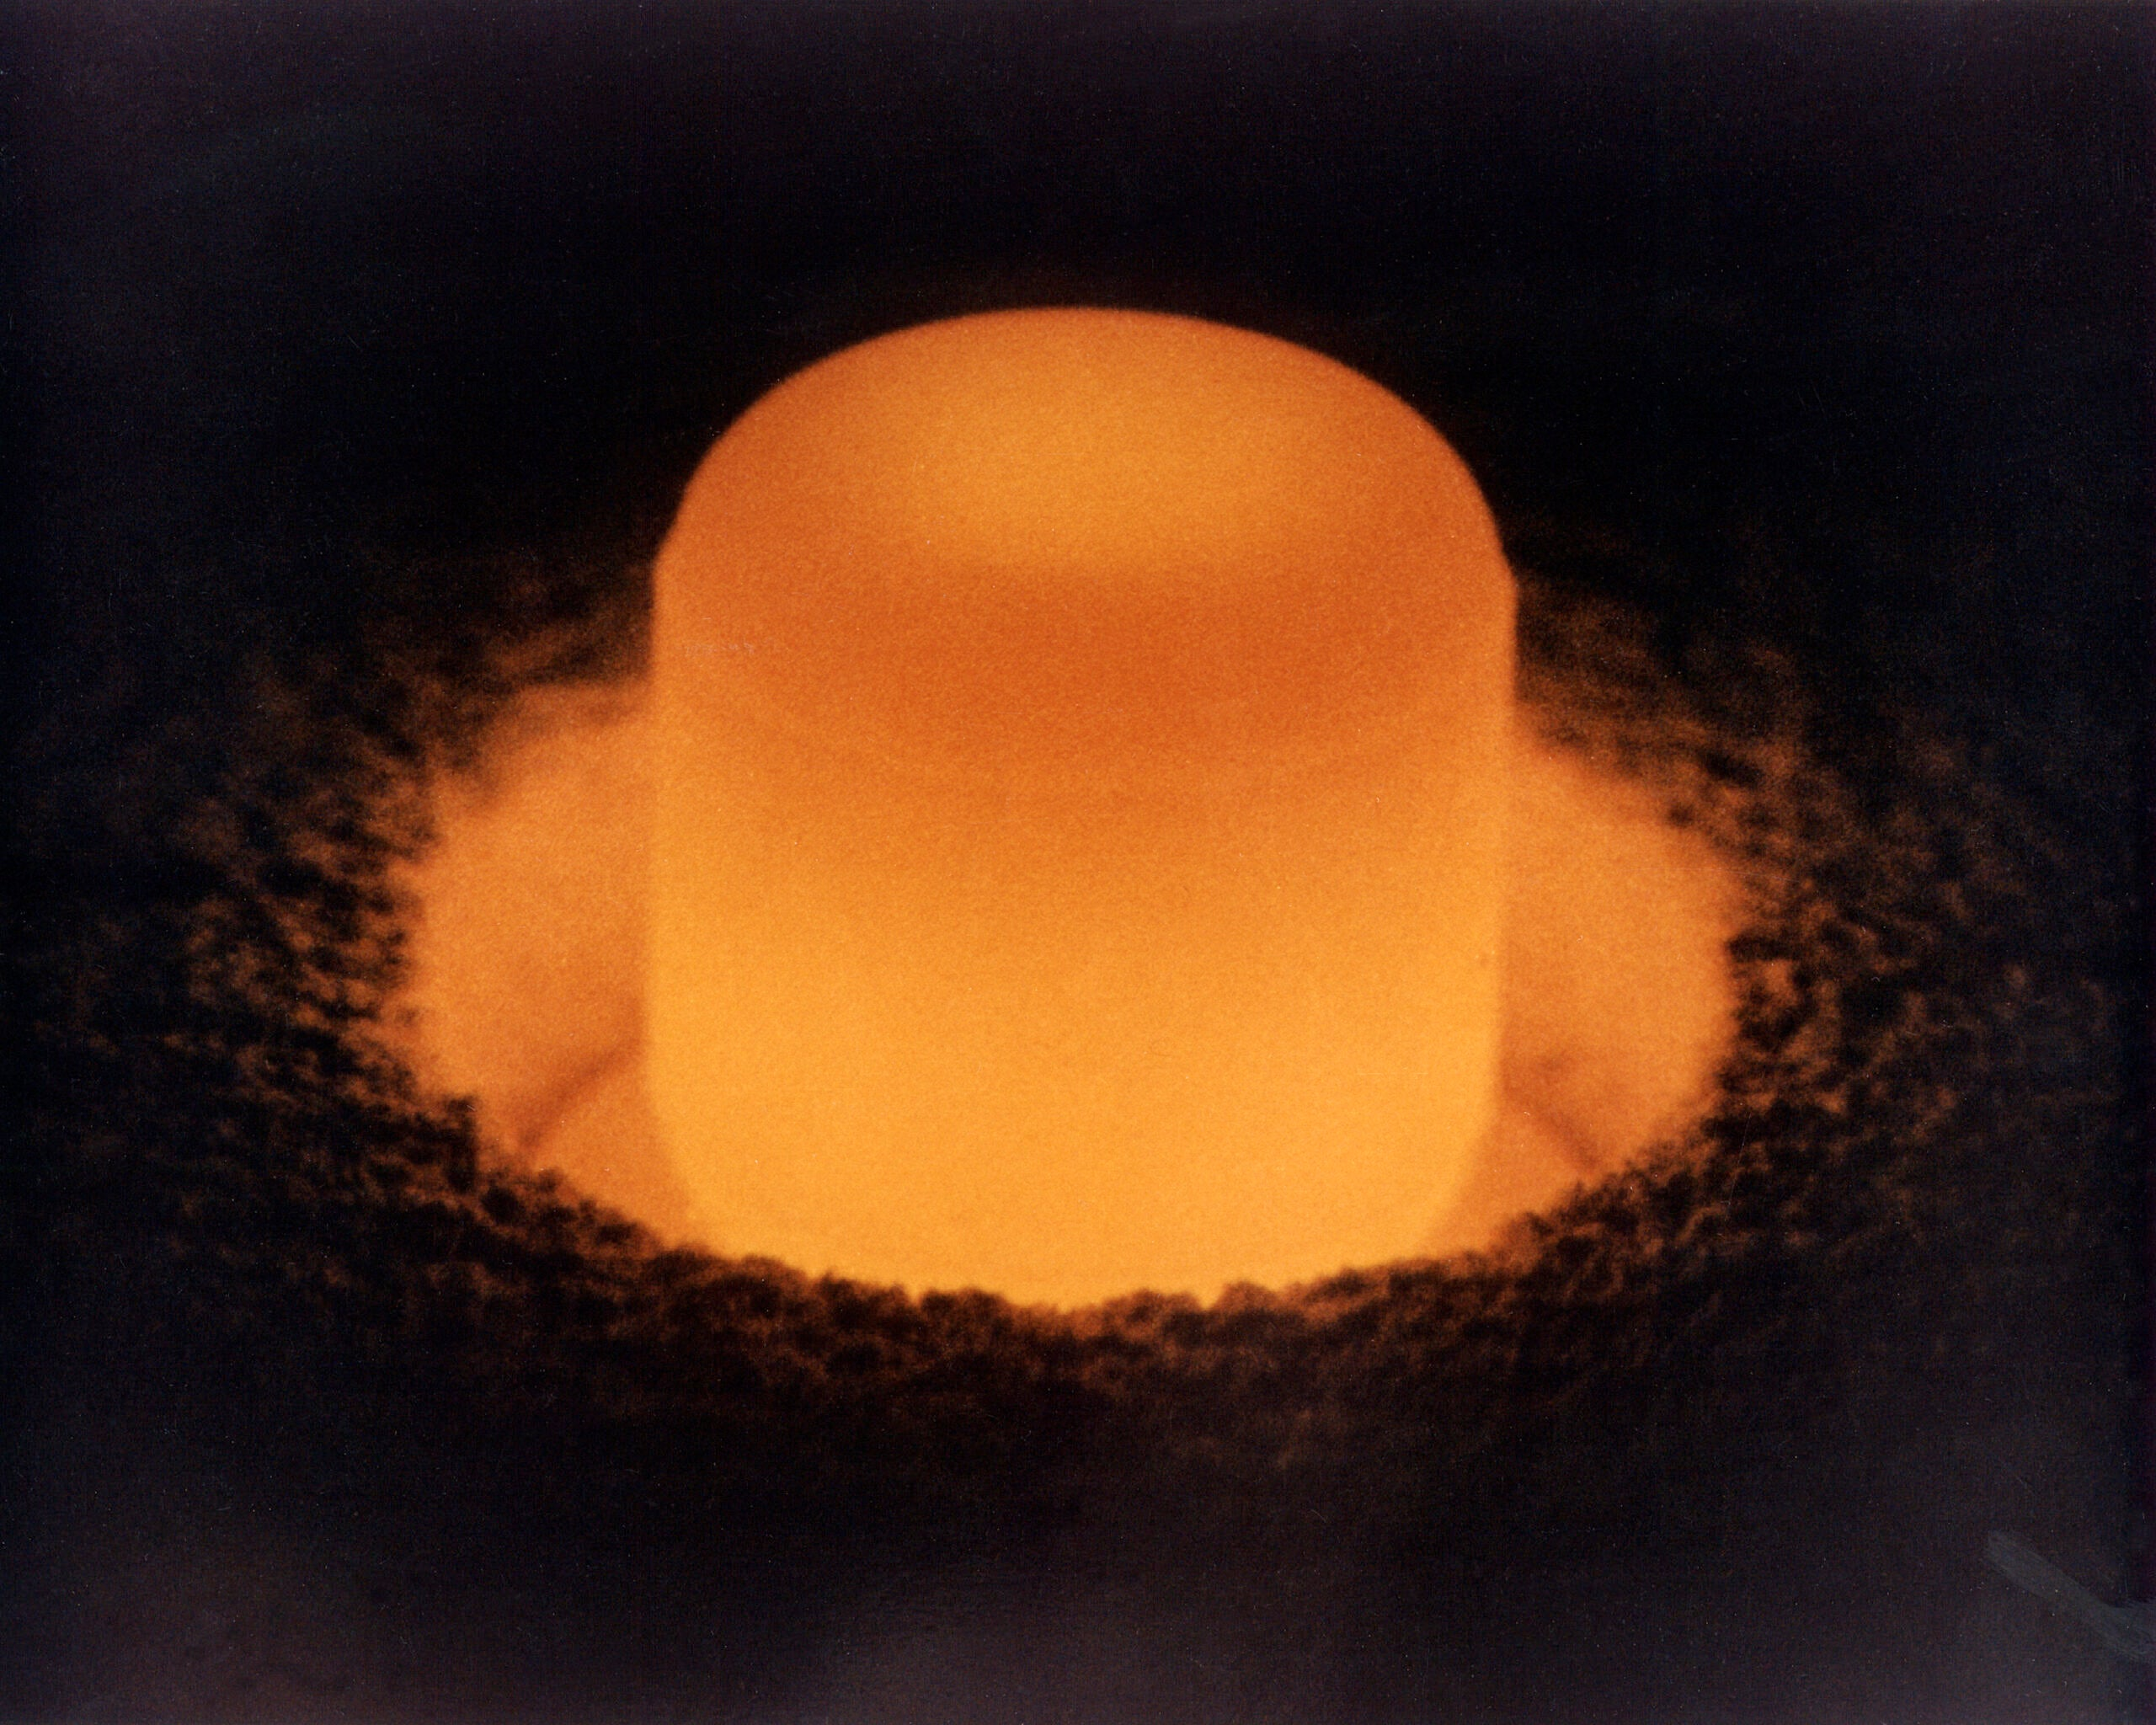 What Do You Do With 34 Metric Tons Of Weapons-Grade Plutonium?